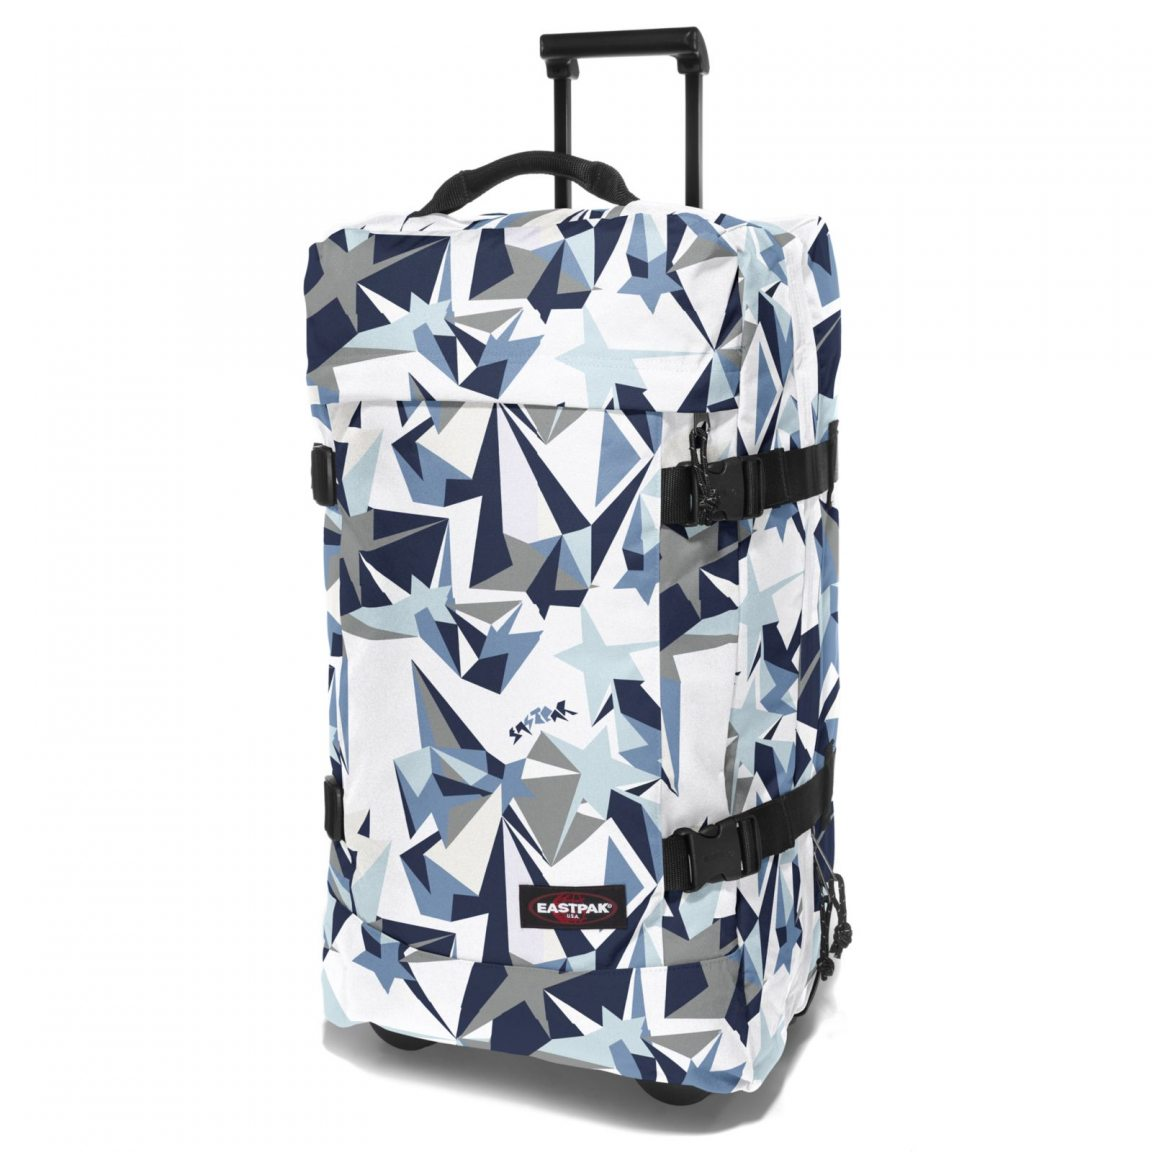 Eastpak Spins - Una delle tante limited edition